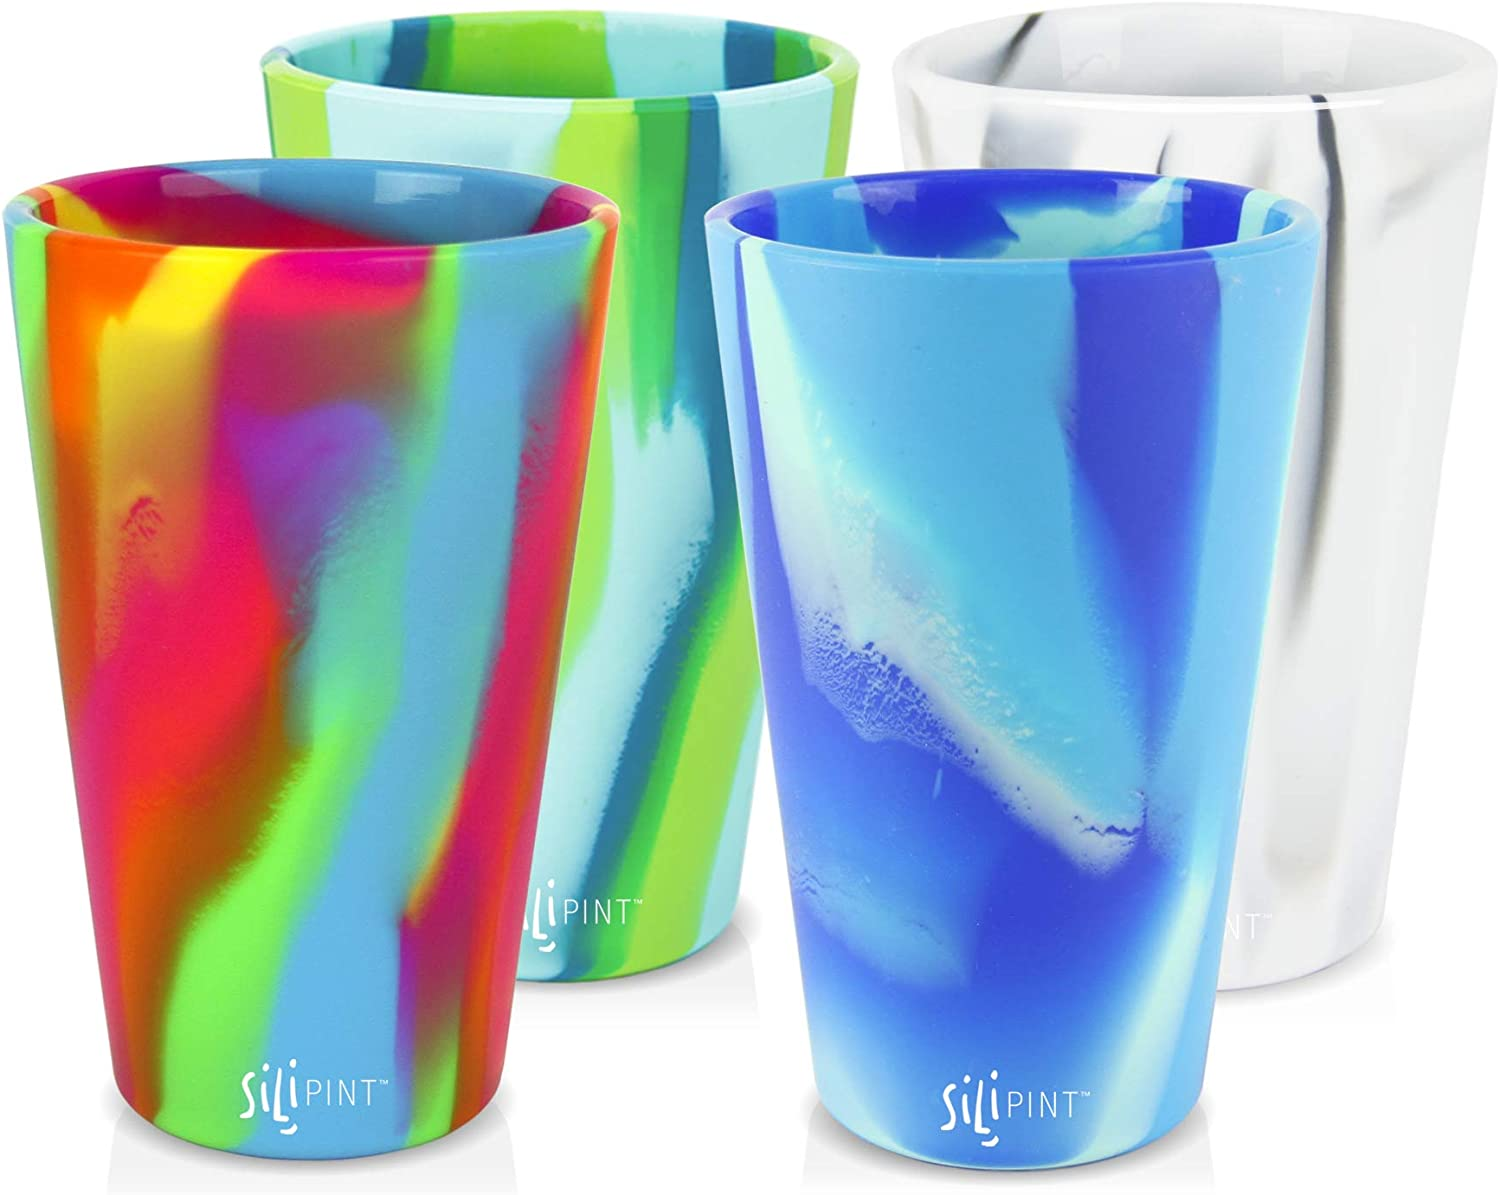 Silipint Silicone Pint Glass. Unbreakable Durable an Reusable Finally popular brand Super intense SALE